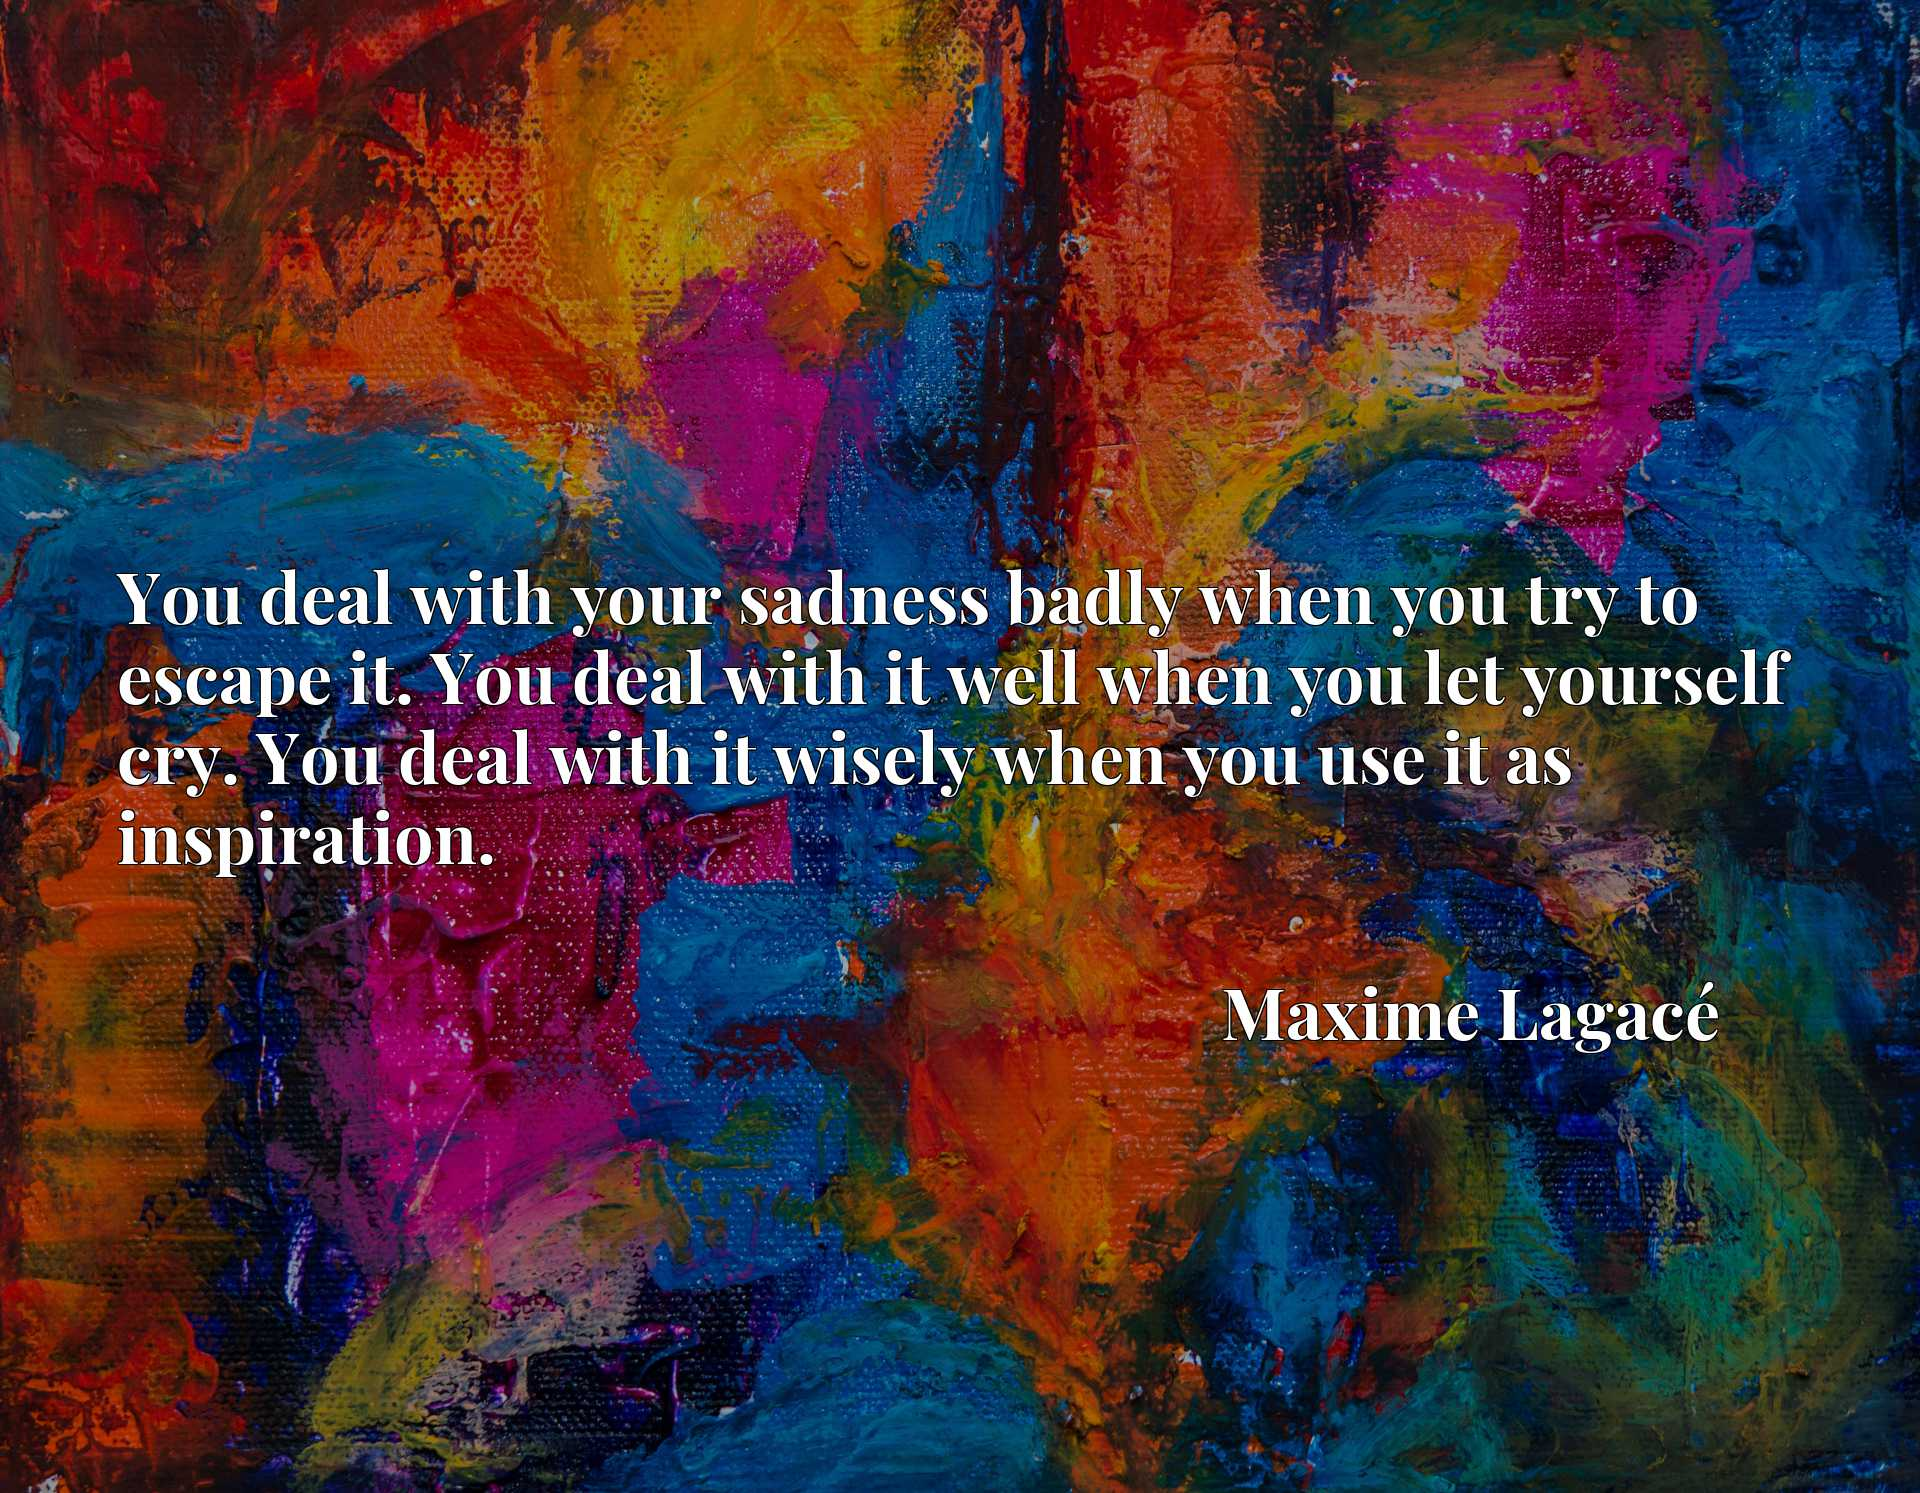 Quote Picture :You deal with your sadness badly when you try to escape it. You deal with it well when you let yourself cry. You deal with it wisely when you use it as inspiration.